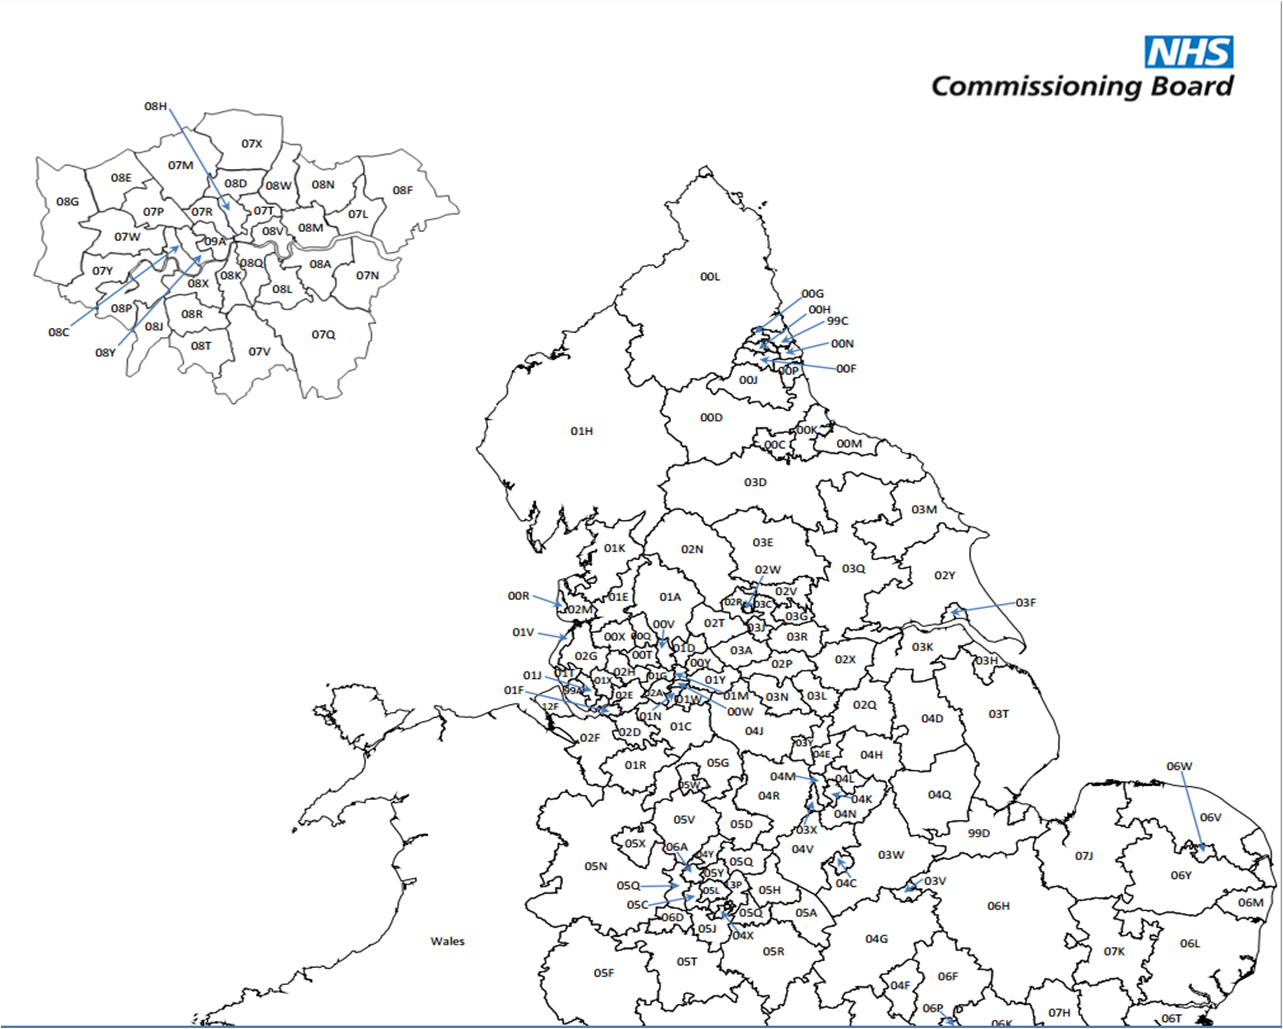 Map Of Clinical Commissioning Groups On The Nhs England